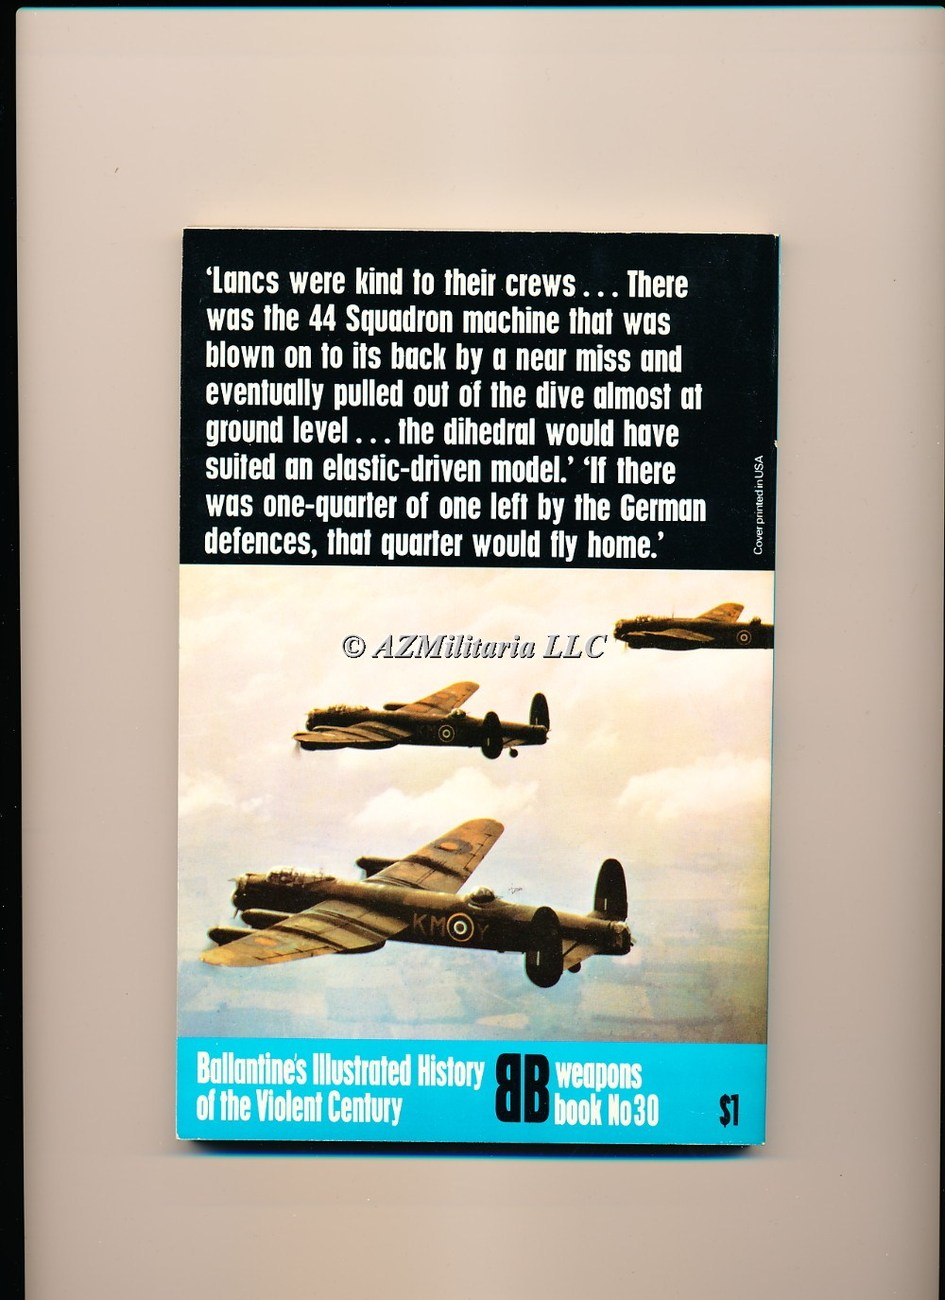 Lancaster Bomber (Weapons Book, No 30)